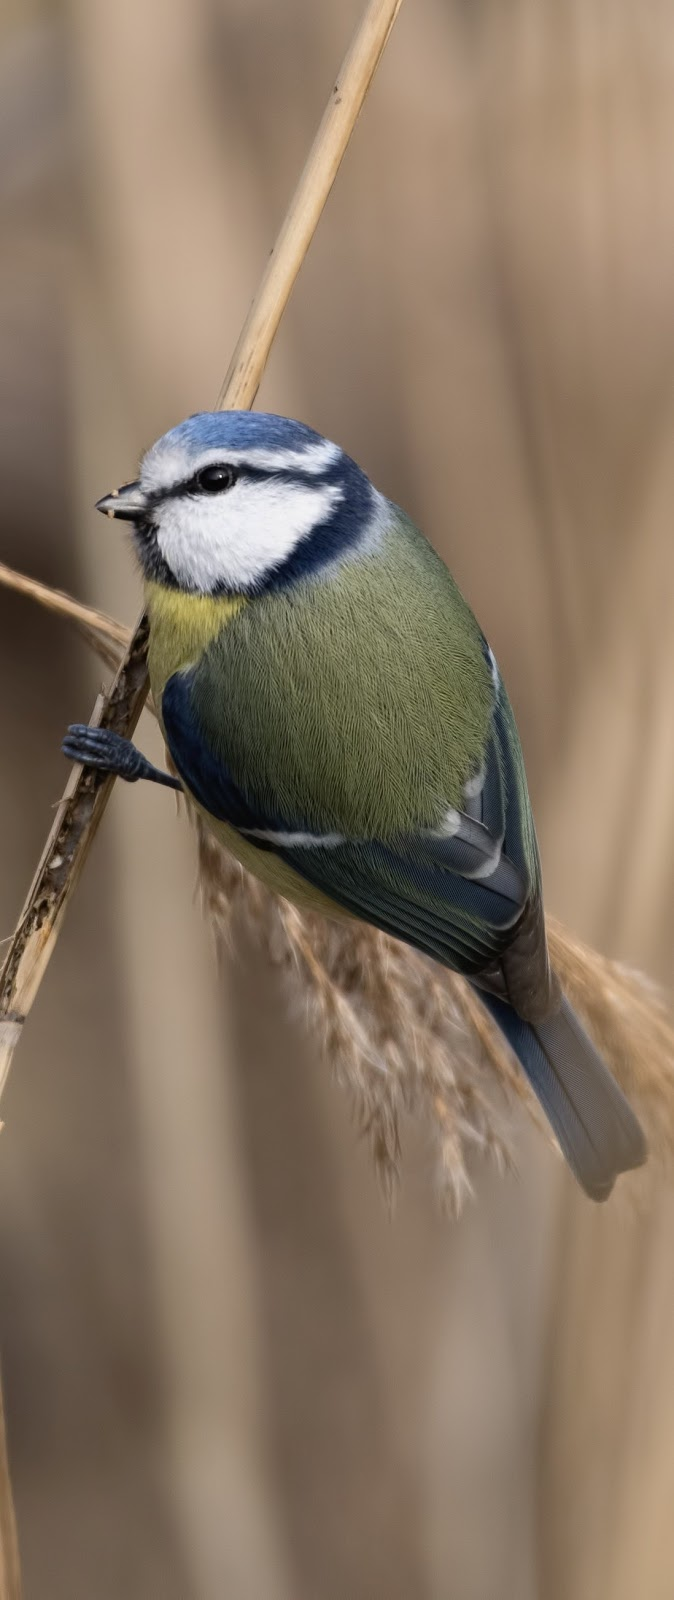 A cute blue tit.